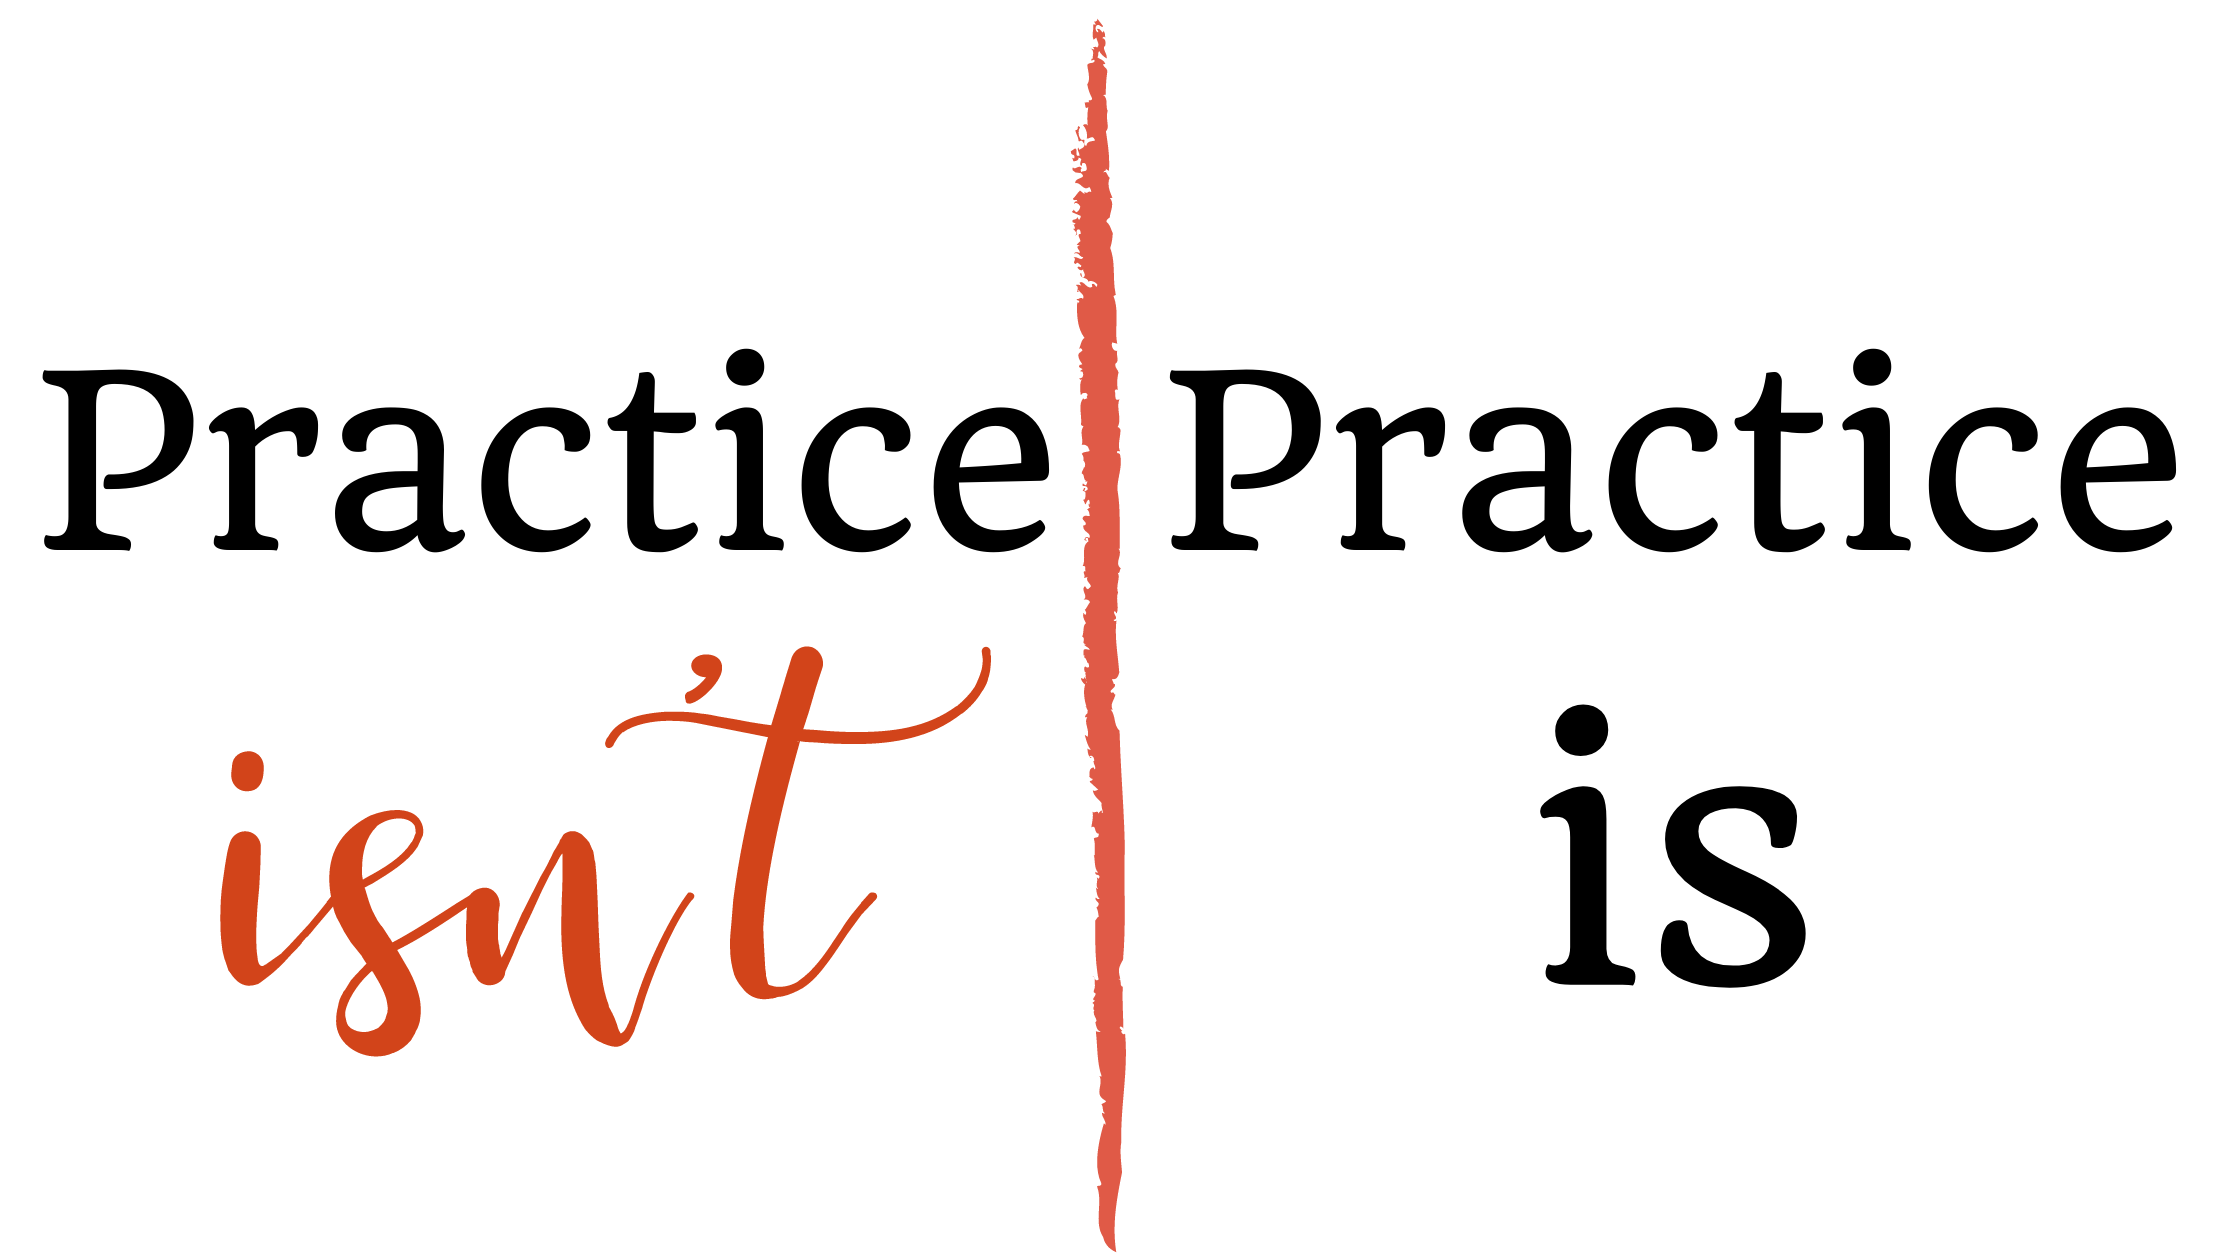 Practice Isn't and Practice Is